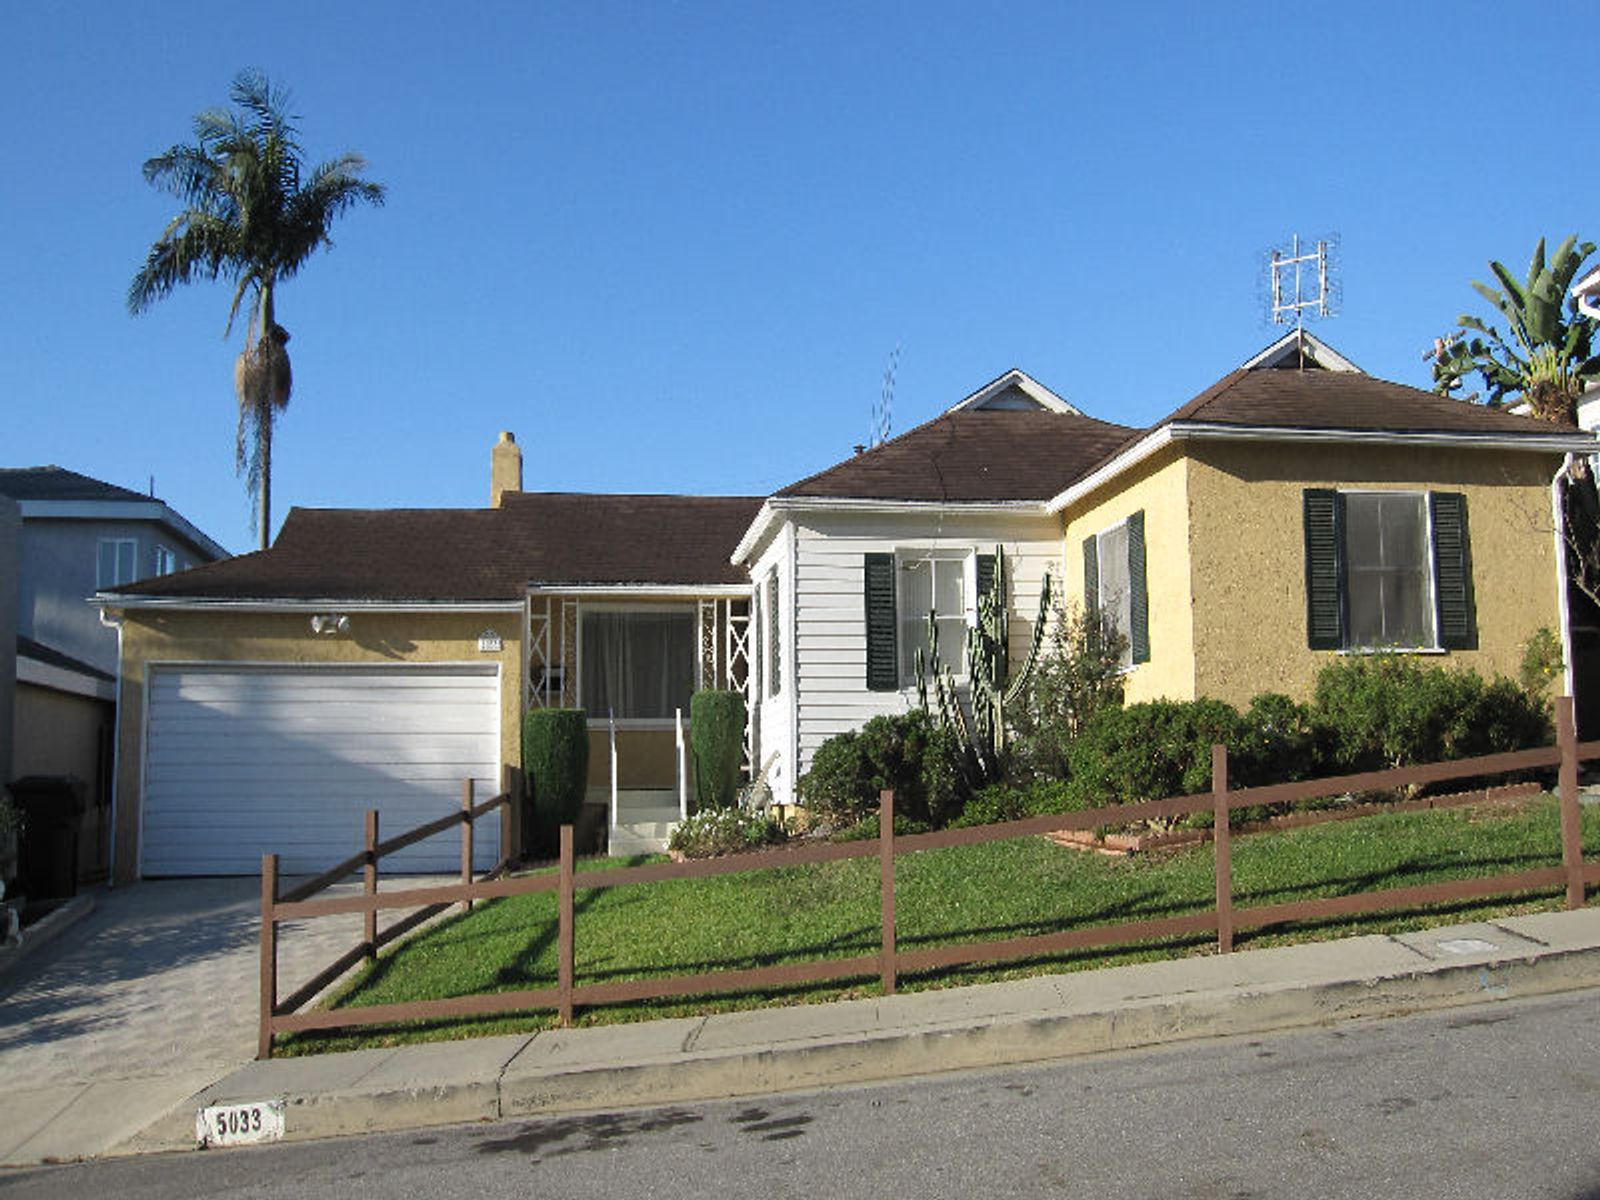 Windsor hills home los angeles ca single family home for Homes for sale in los angeles area